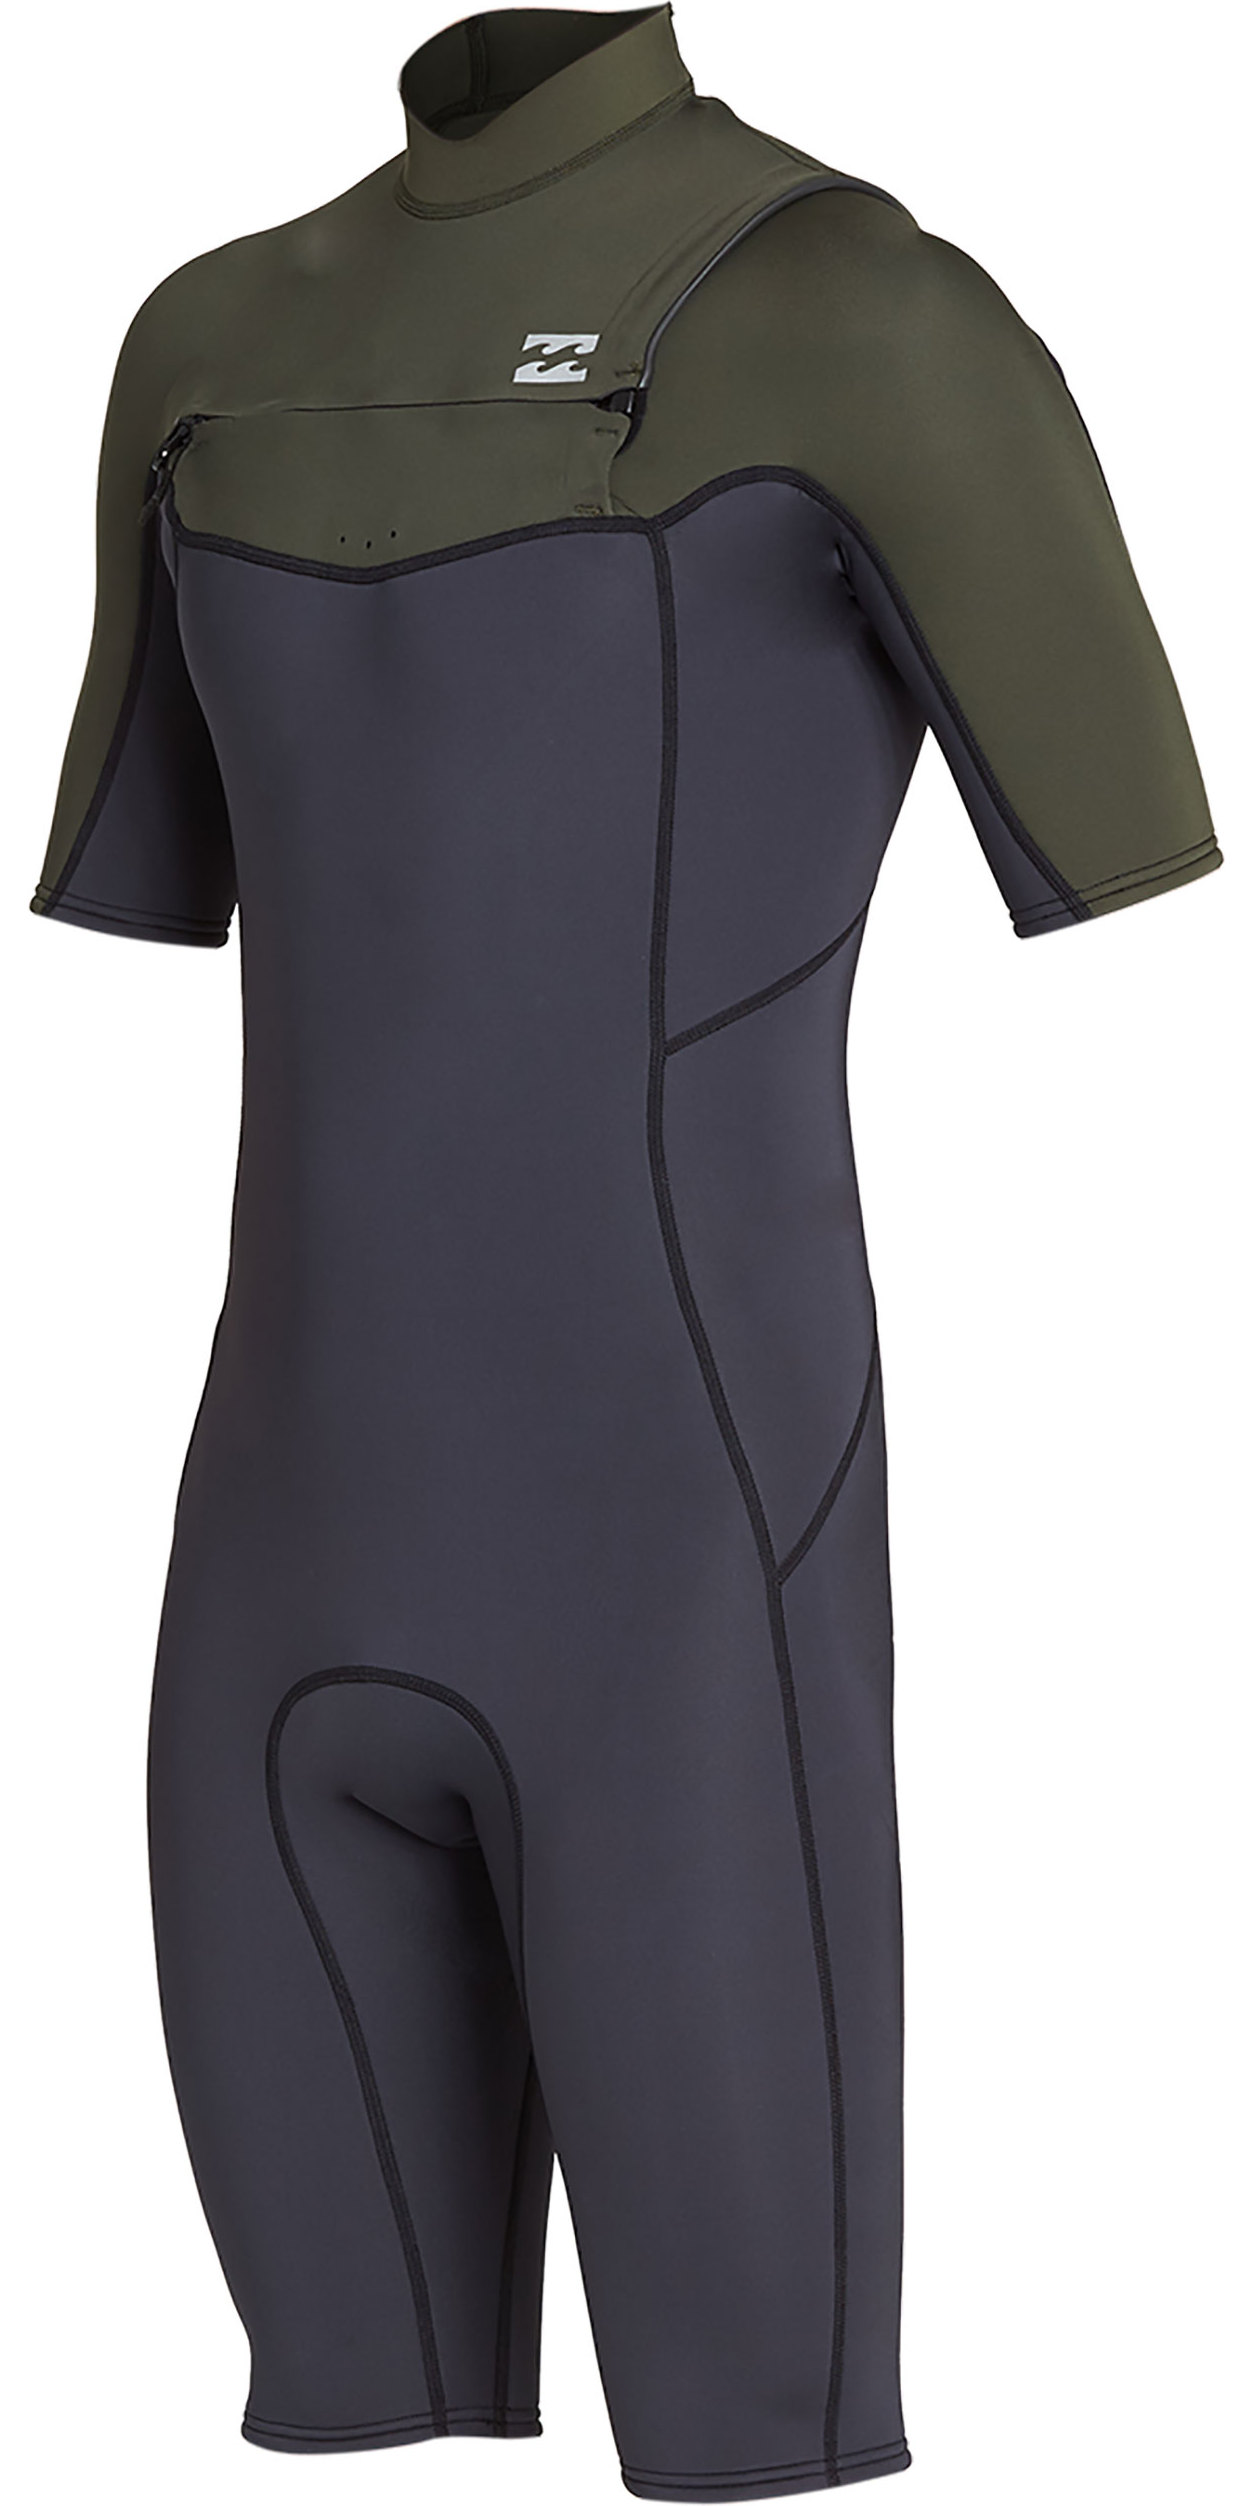 ac98166a40bb 2019 Billabong Mens 2mm Absolute Chest Zip Shorty Wetsuit Black Olive  N42M23 ...